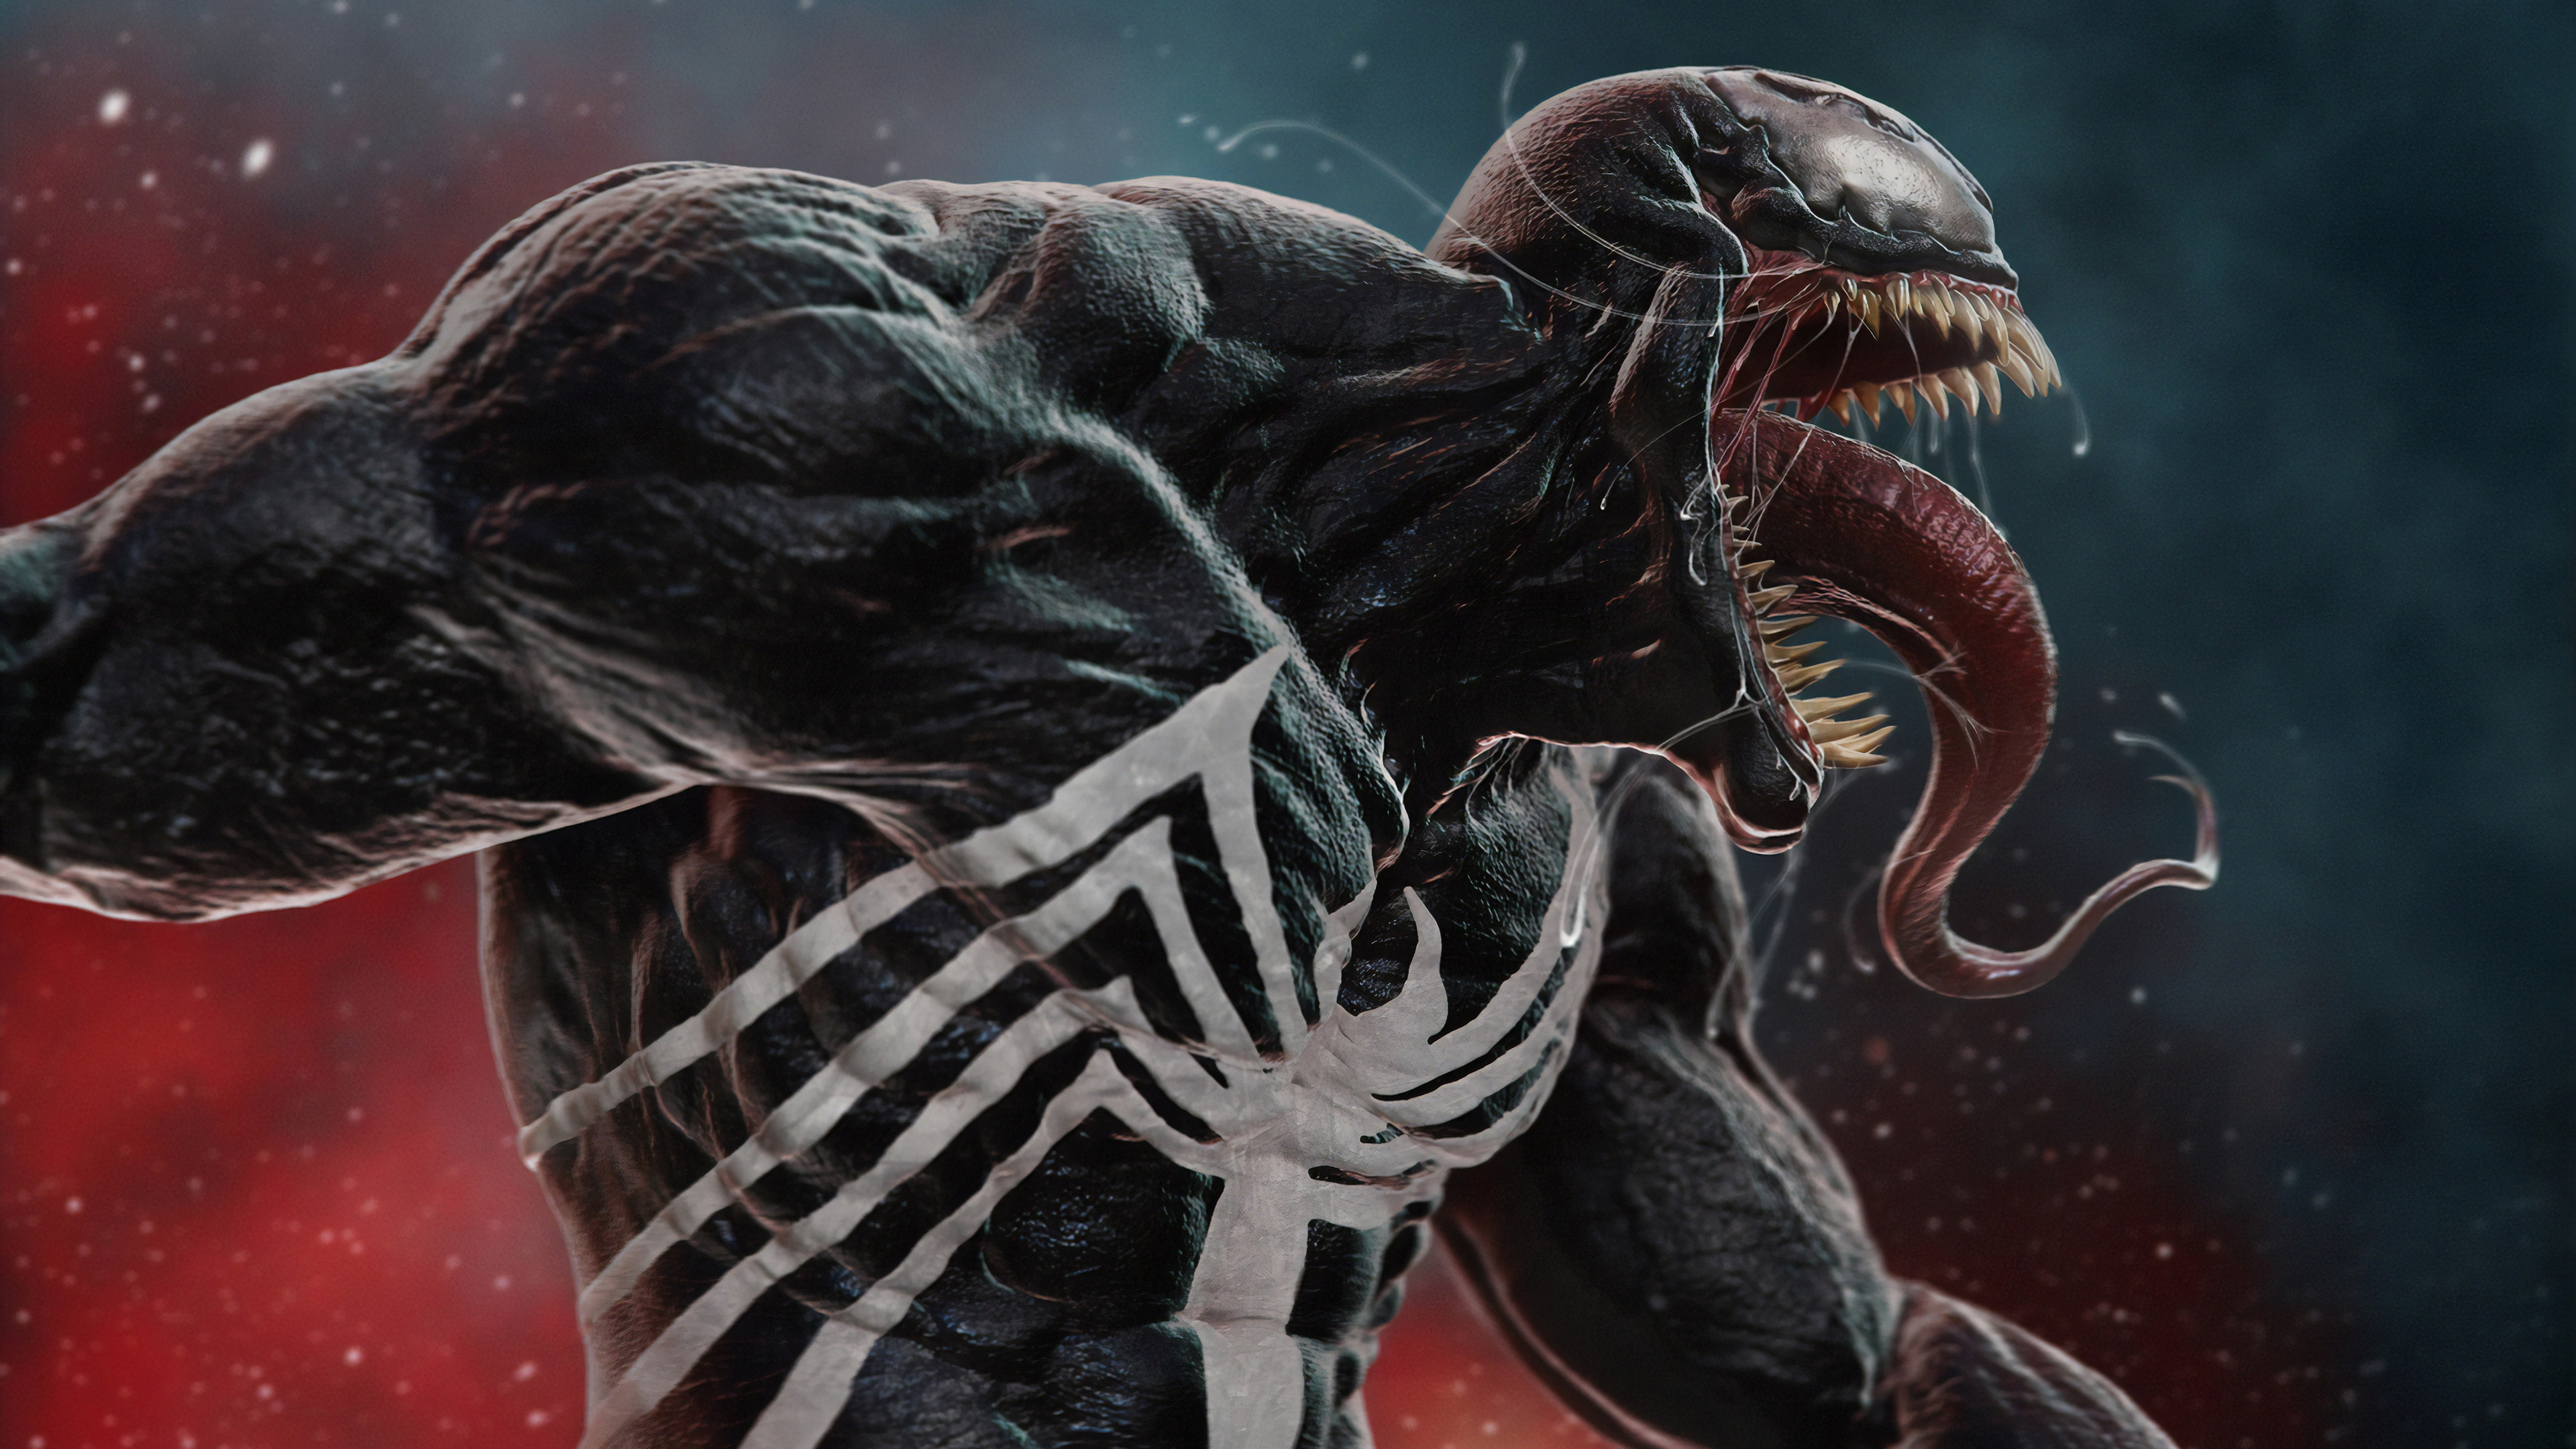 venom newart 1570394188 - Venom  Newart - Venom wallpapers, superheroes wallpapers, hd-wallpapers, digital art wallpapers, artwork wallpapers, artstation wallpapers, 4k-wallpapers